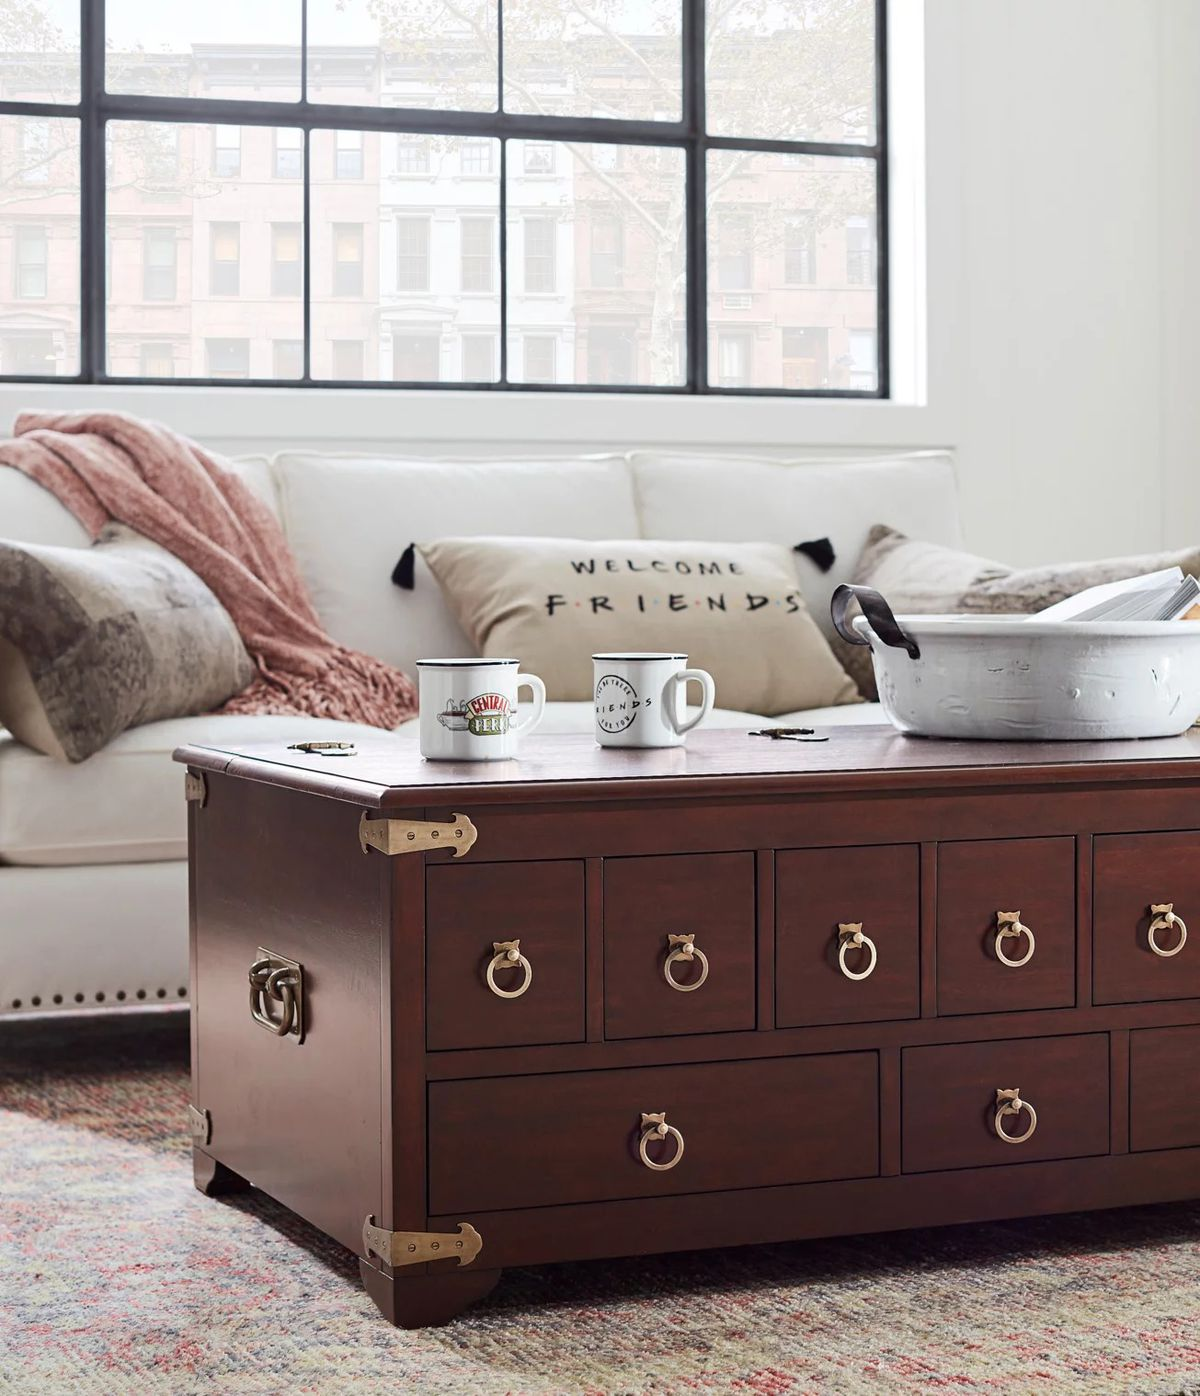 Image of: A Pottery Barn Friends Collection Is Coming Vox